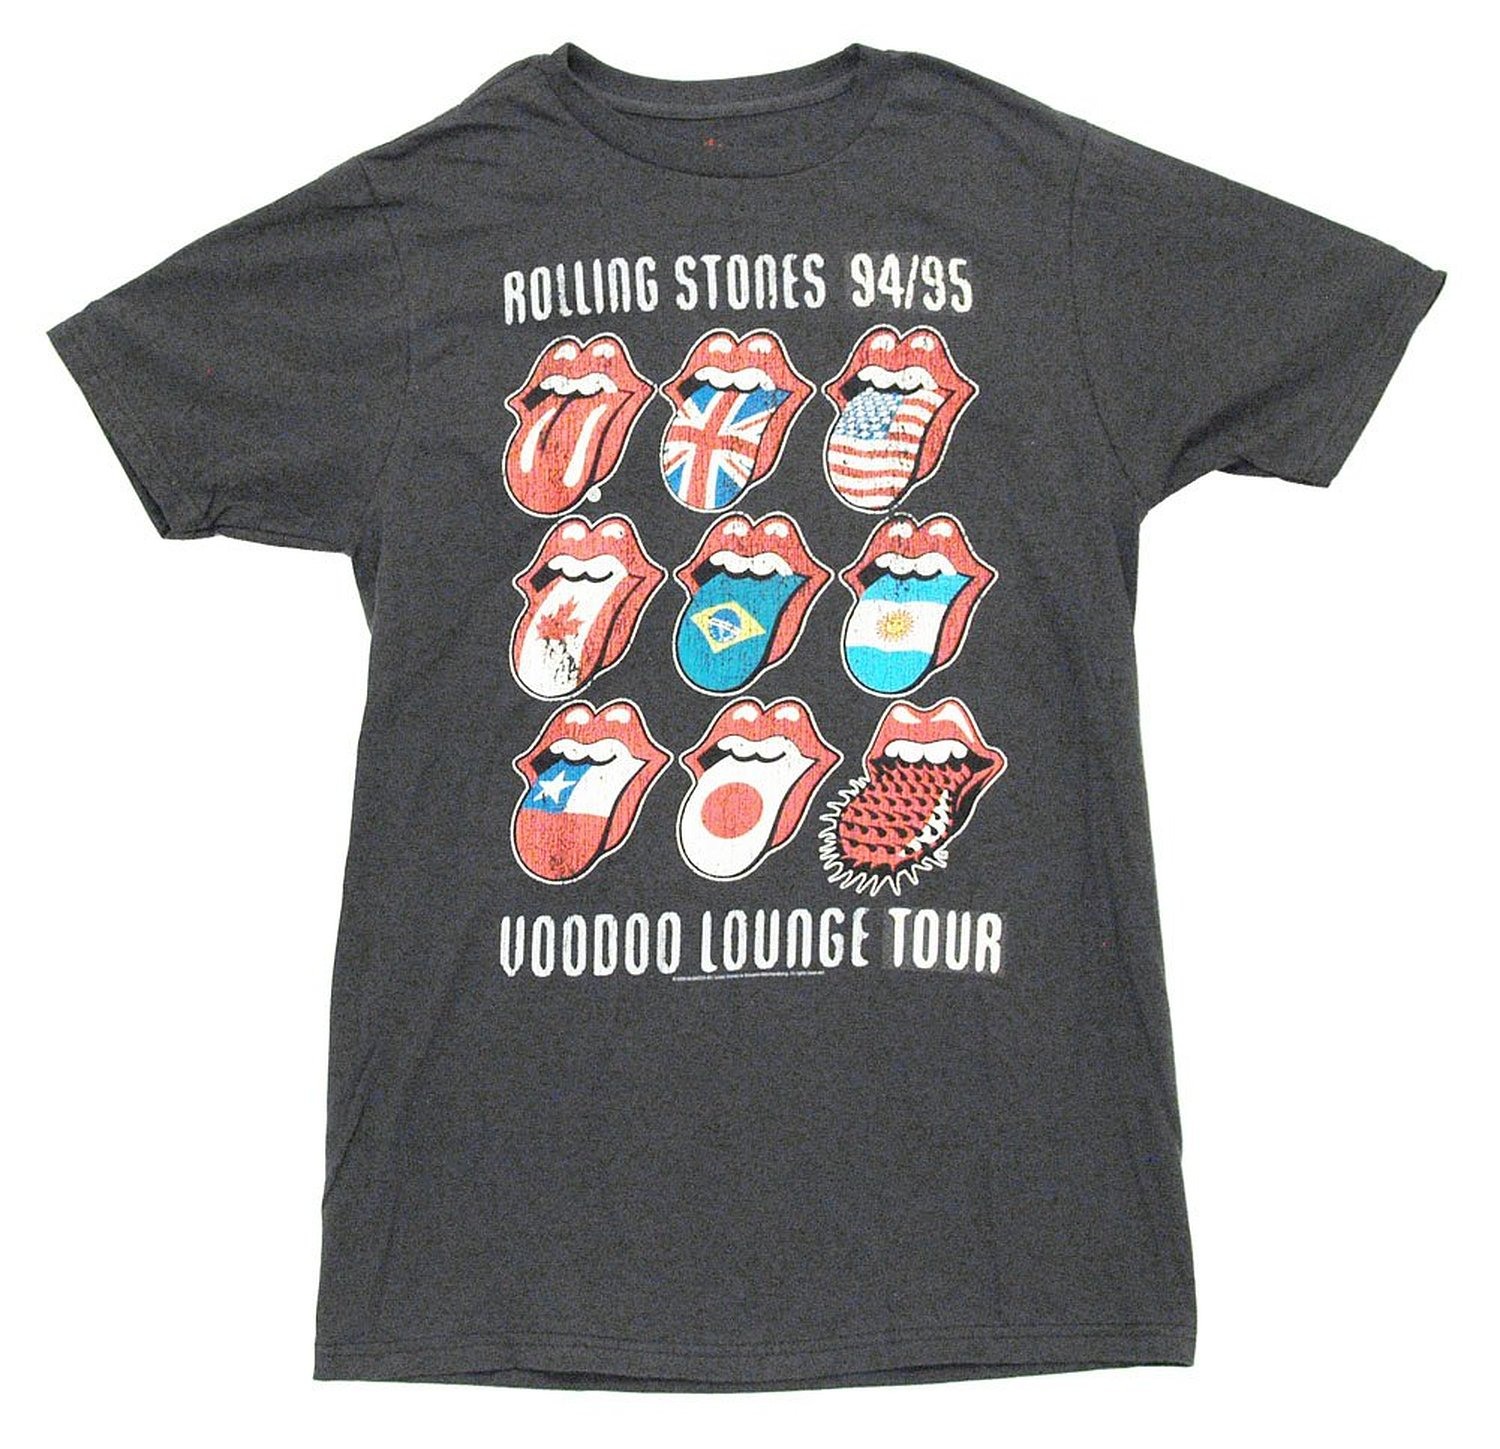 Amazon.com: Rolling Stones - Voodoo Tongues Soft T-Shirt: Music Fan T Shirts: Clothing